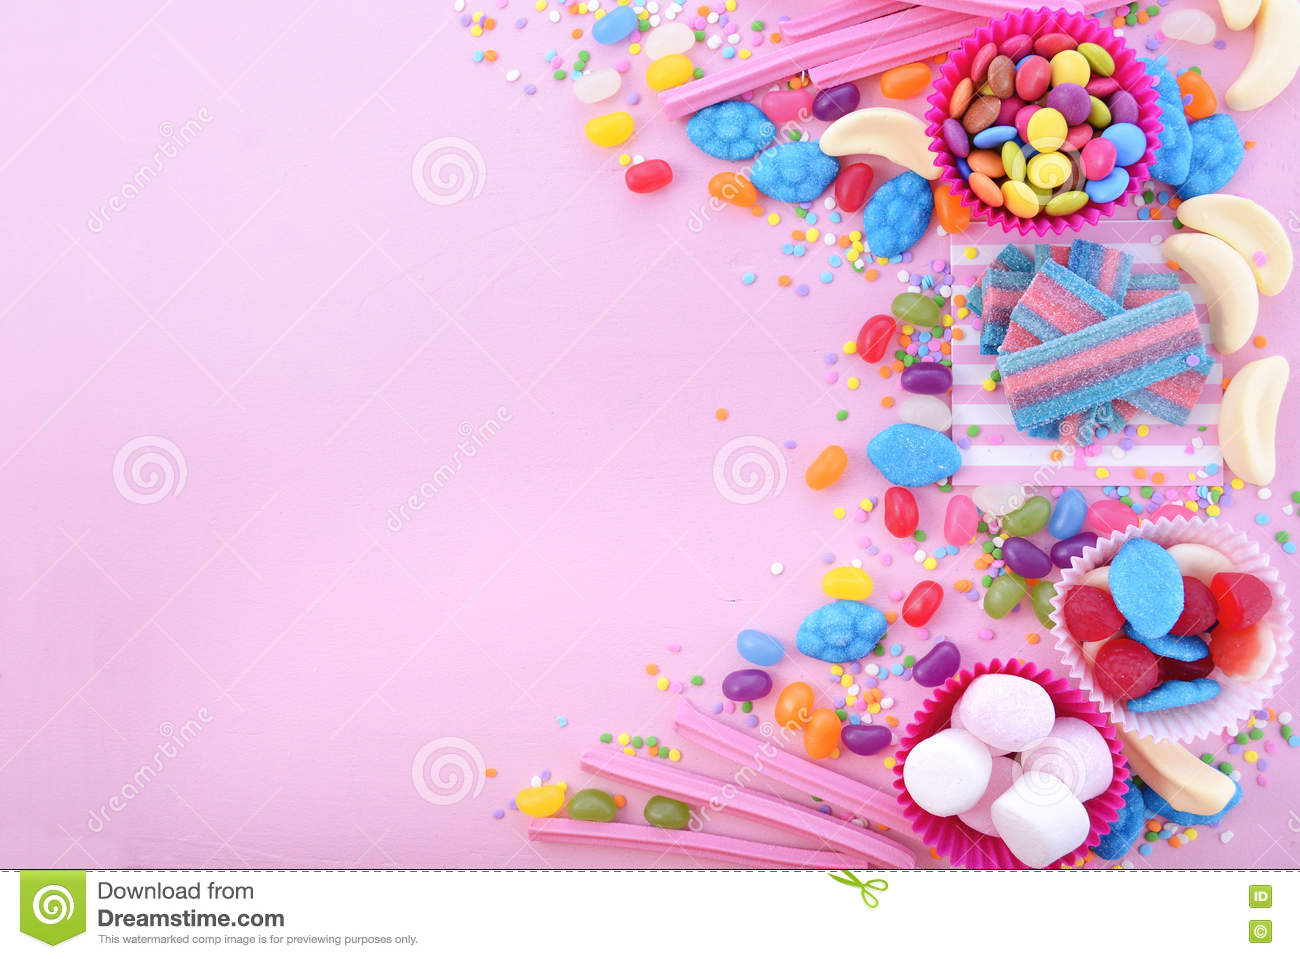 Bright Colorful Candy Background Stock Photo  Image of